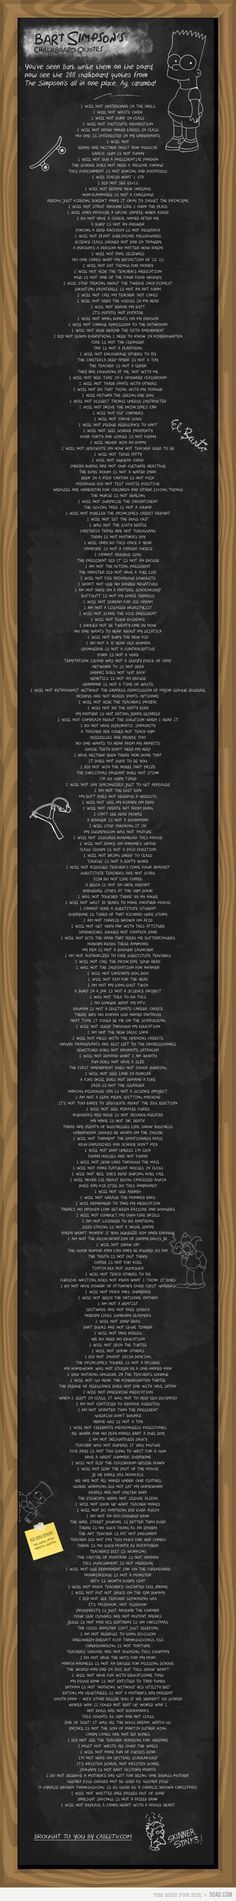 All of Bart's chalkboard quotes